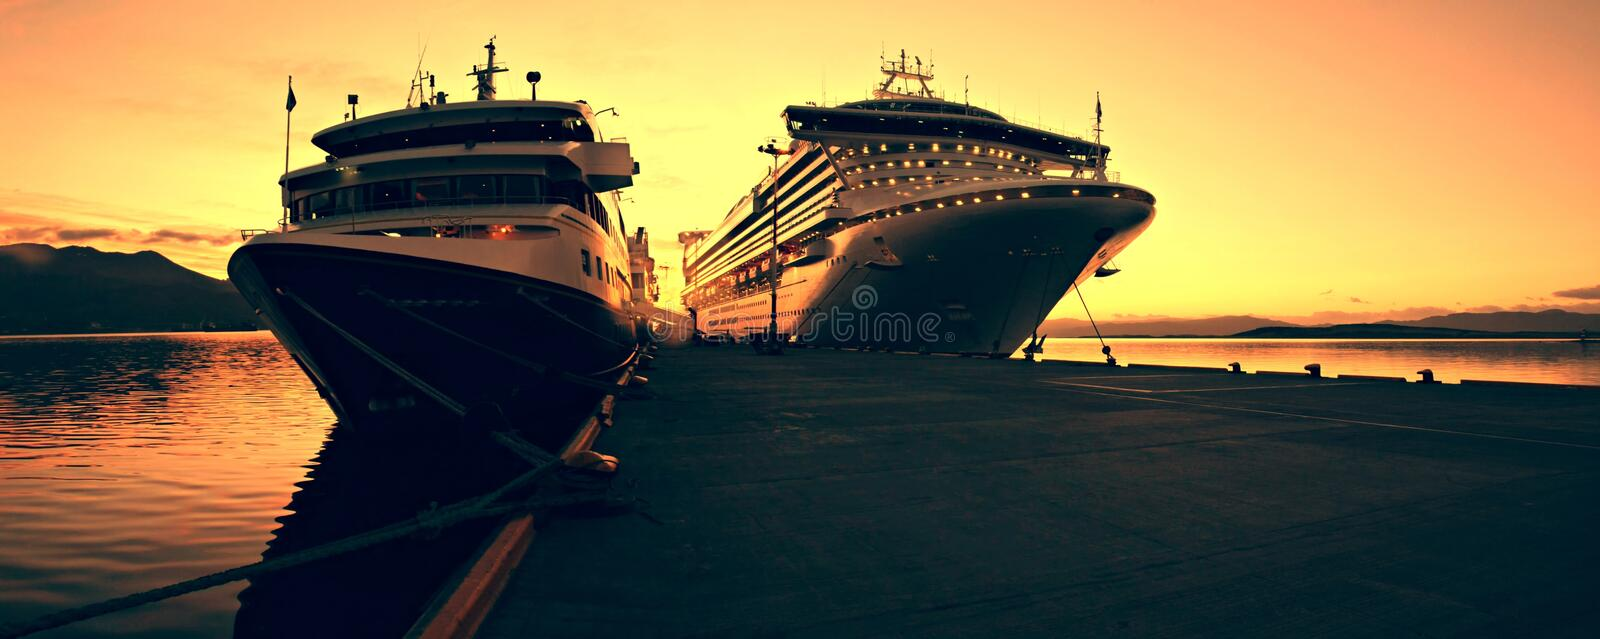 Download Cruise ship at Sunris stock image. Image of relaxation - 14547389